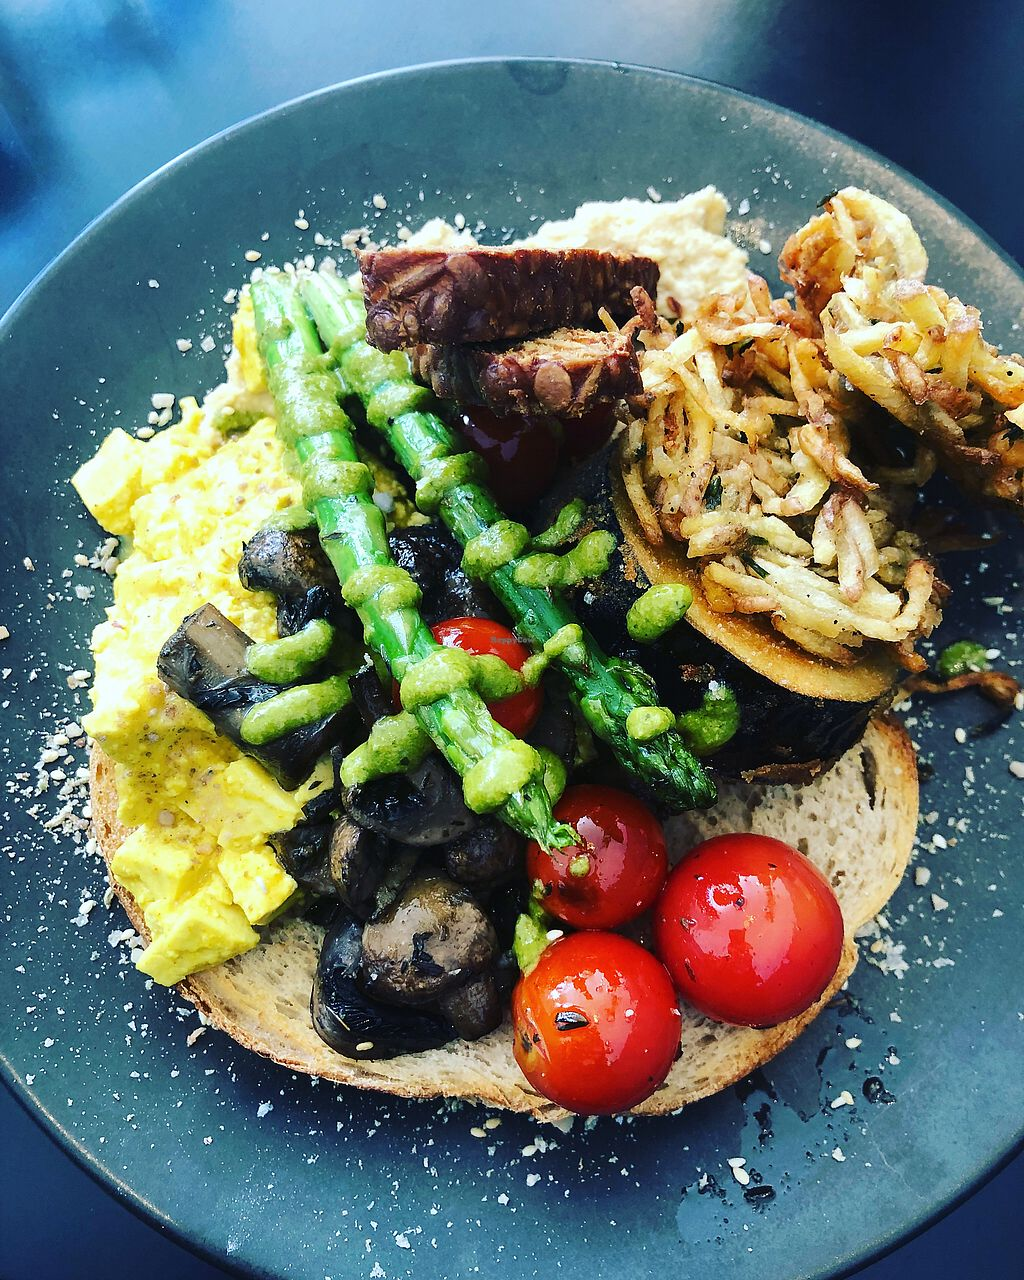 """Photo of Dicki's  by <a href=""""/members/profile/pianochiick"""">pianochiick</a> <br/>Big Breakfast Special <br/> May 24, 2018  - <a href='/contact/abuse/image/112875/404233'>Report</a>"""